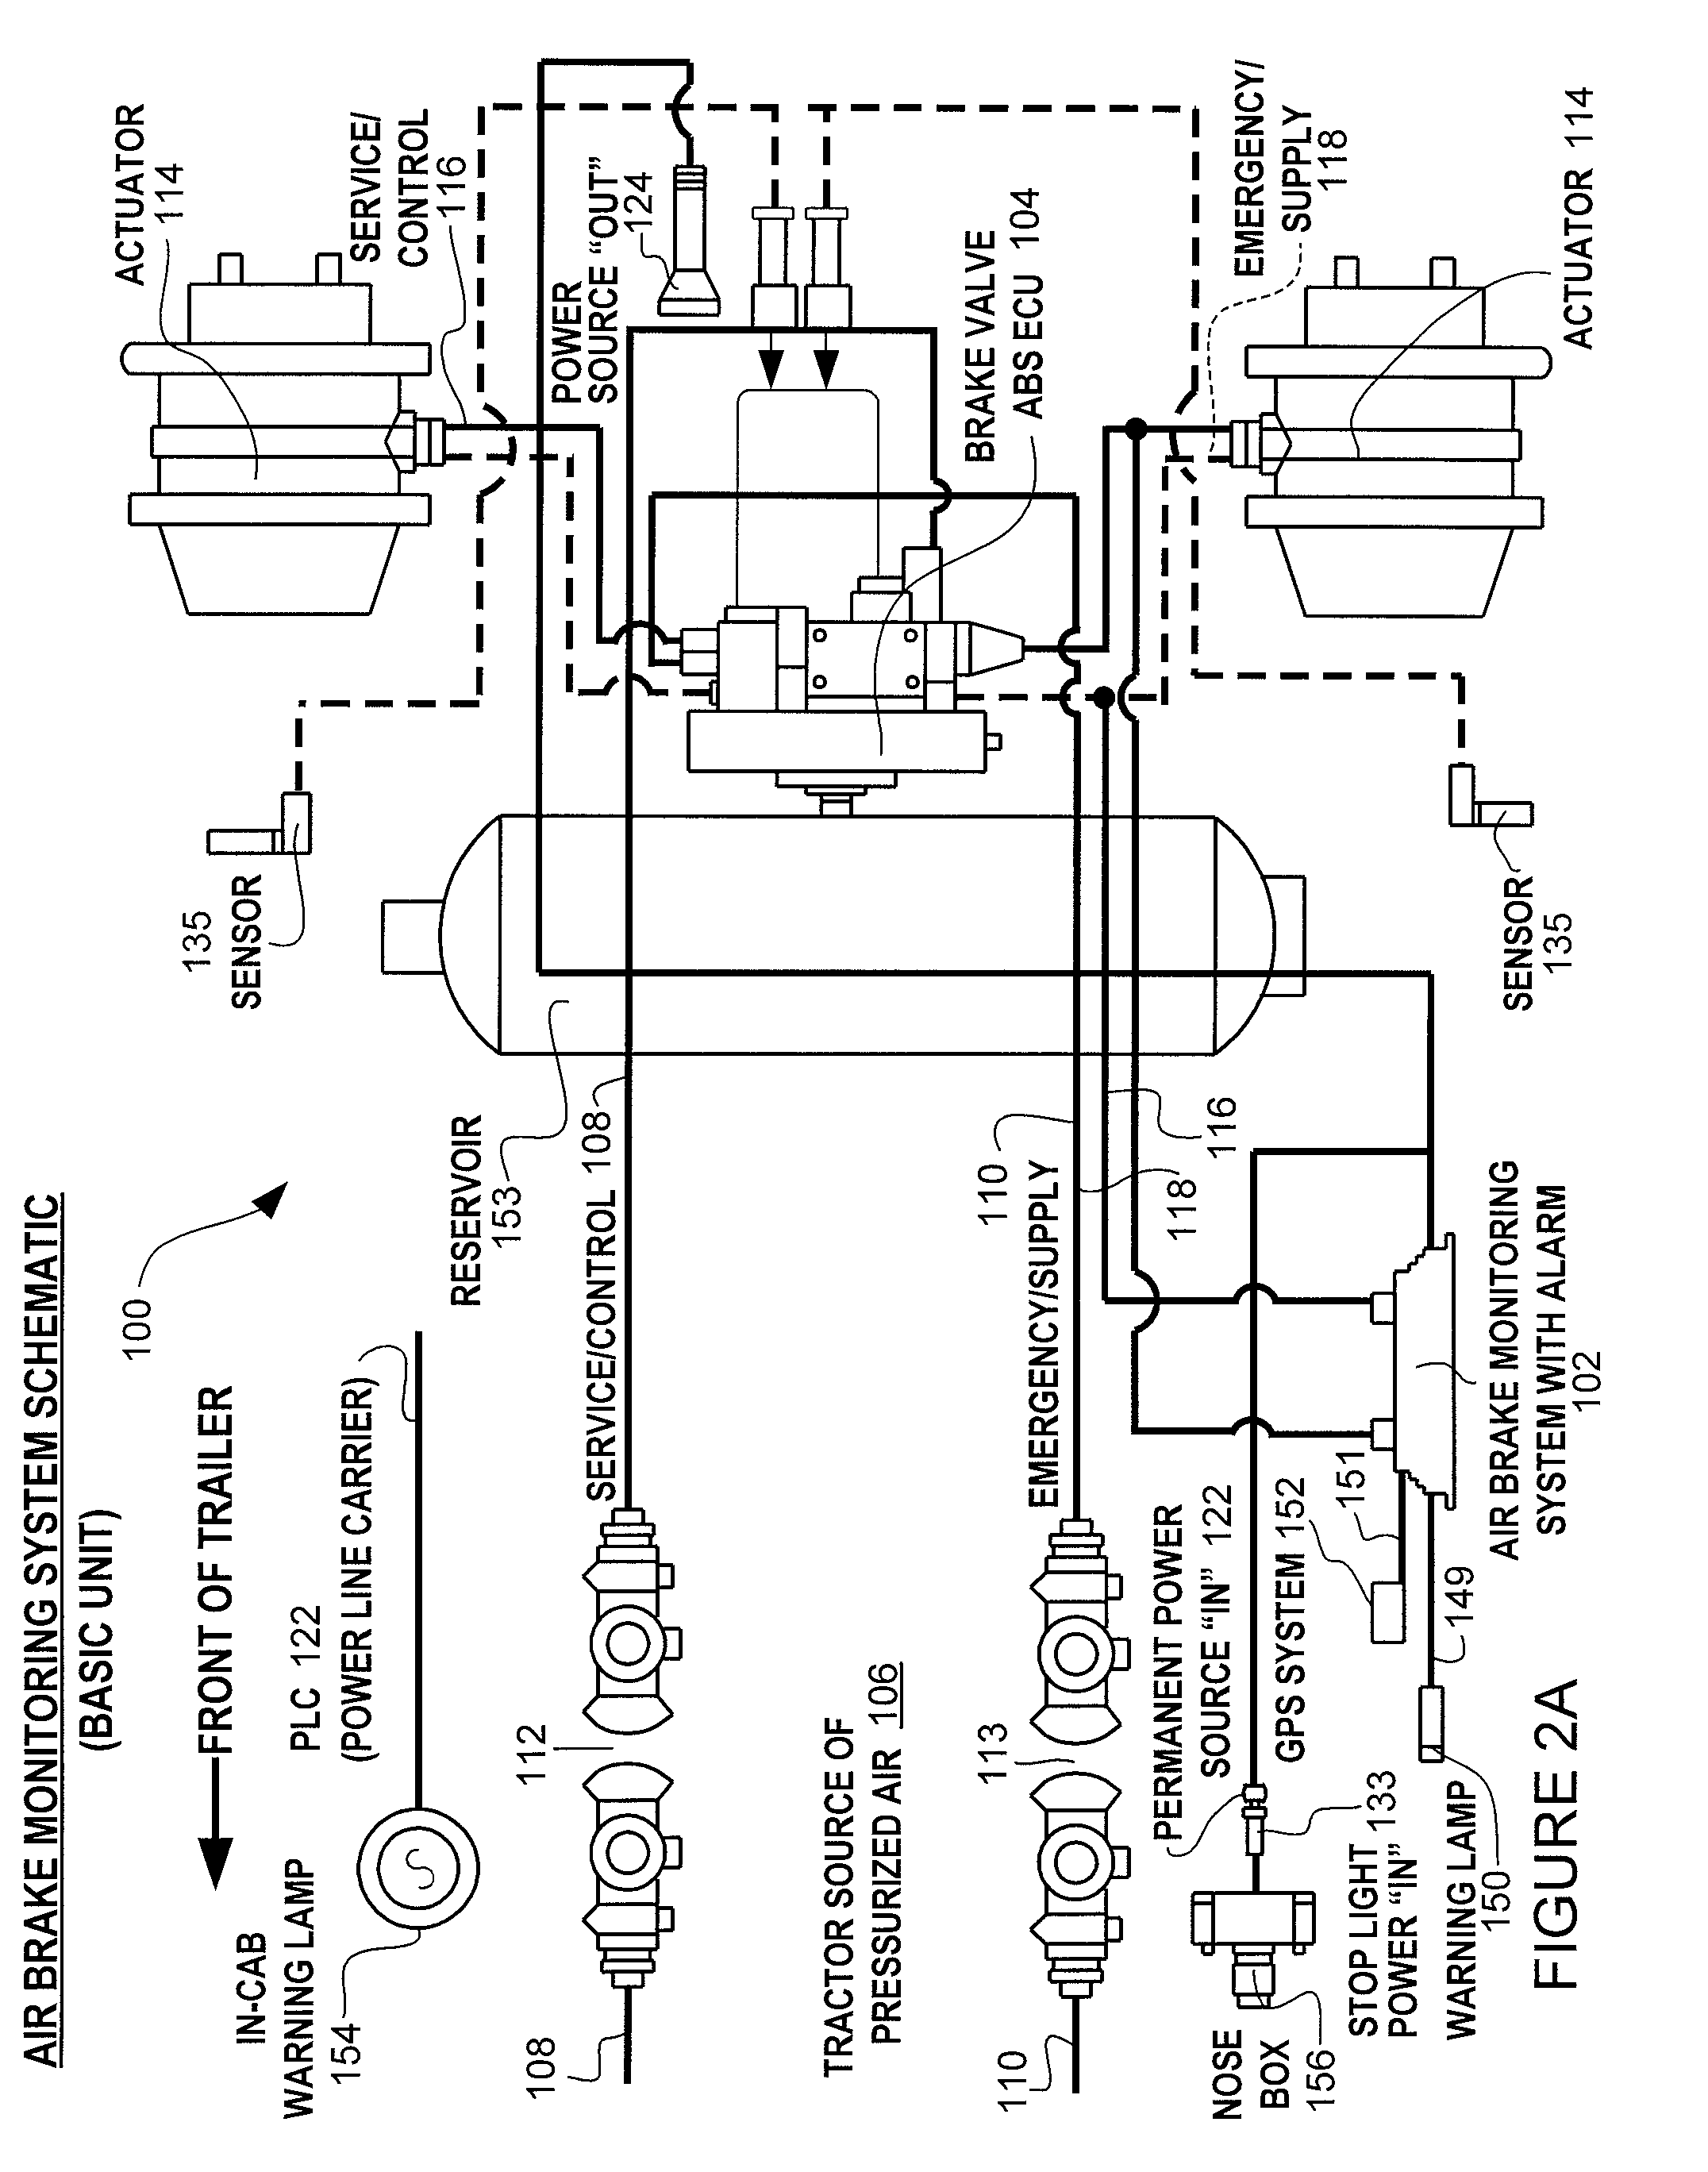 wabco abs wiring diagram plug wabco 4s 4m abs wiring diagram wabco abs wiring diagram - diagrams online #7